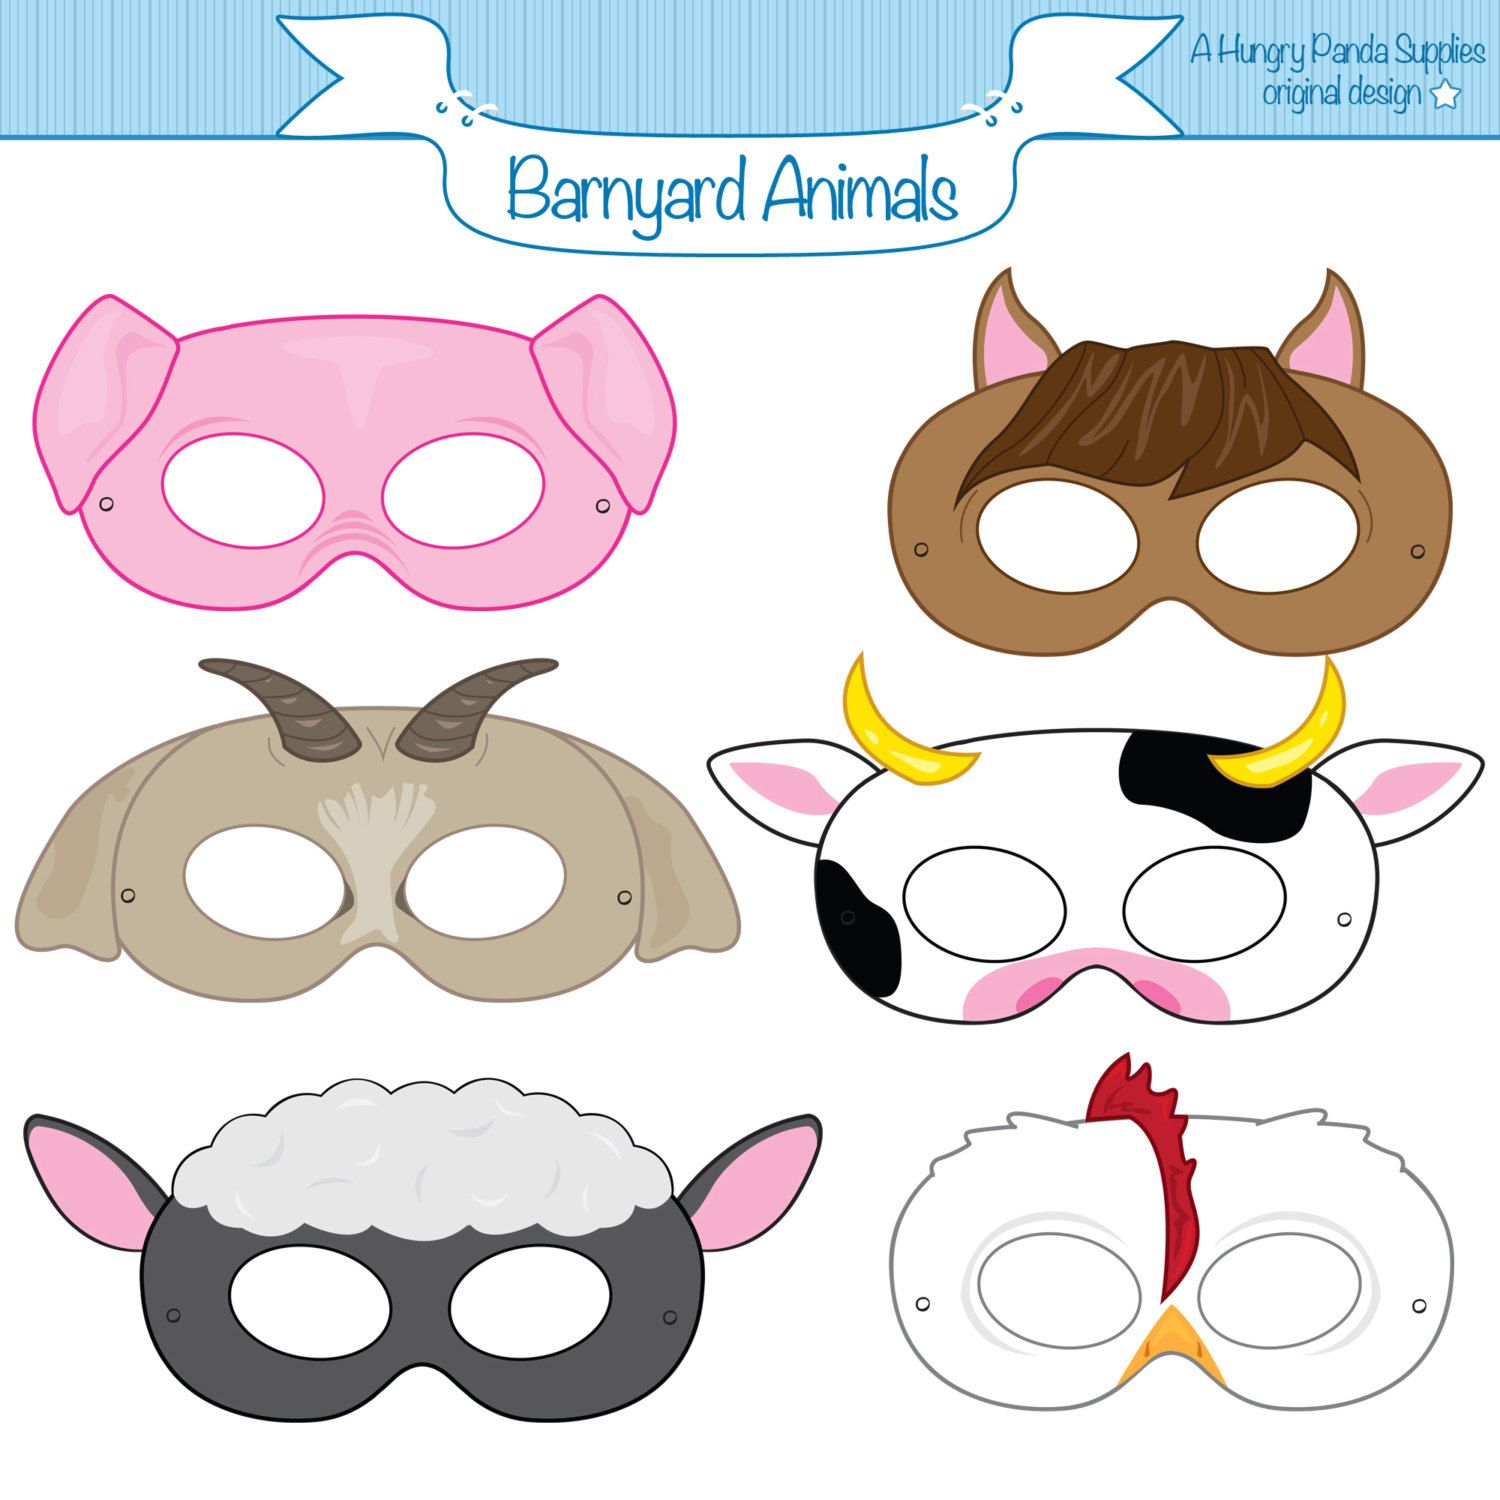 Barnyard Animals Printable Masks Printable Party Masks Farm Animal Mask Farm Animals Costume